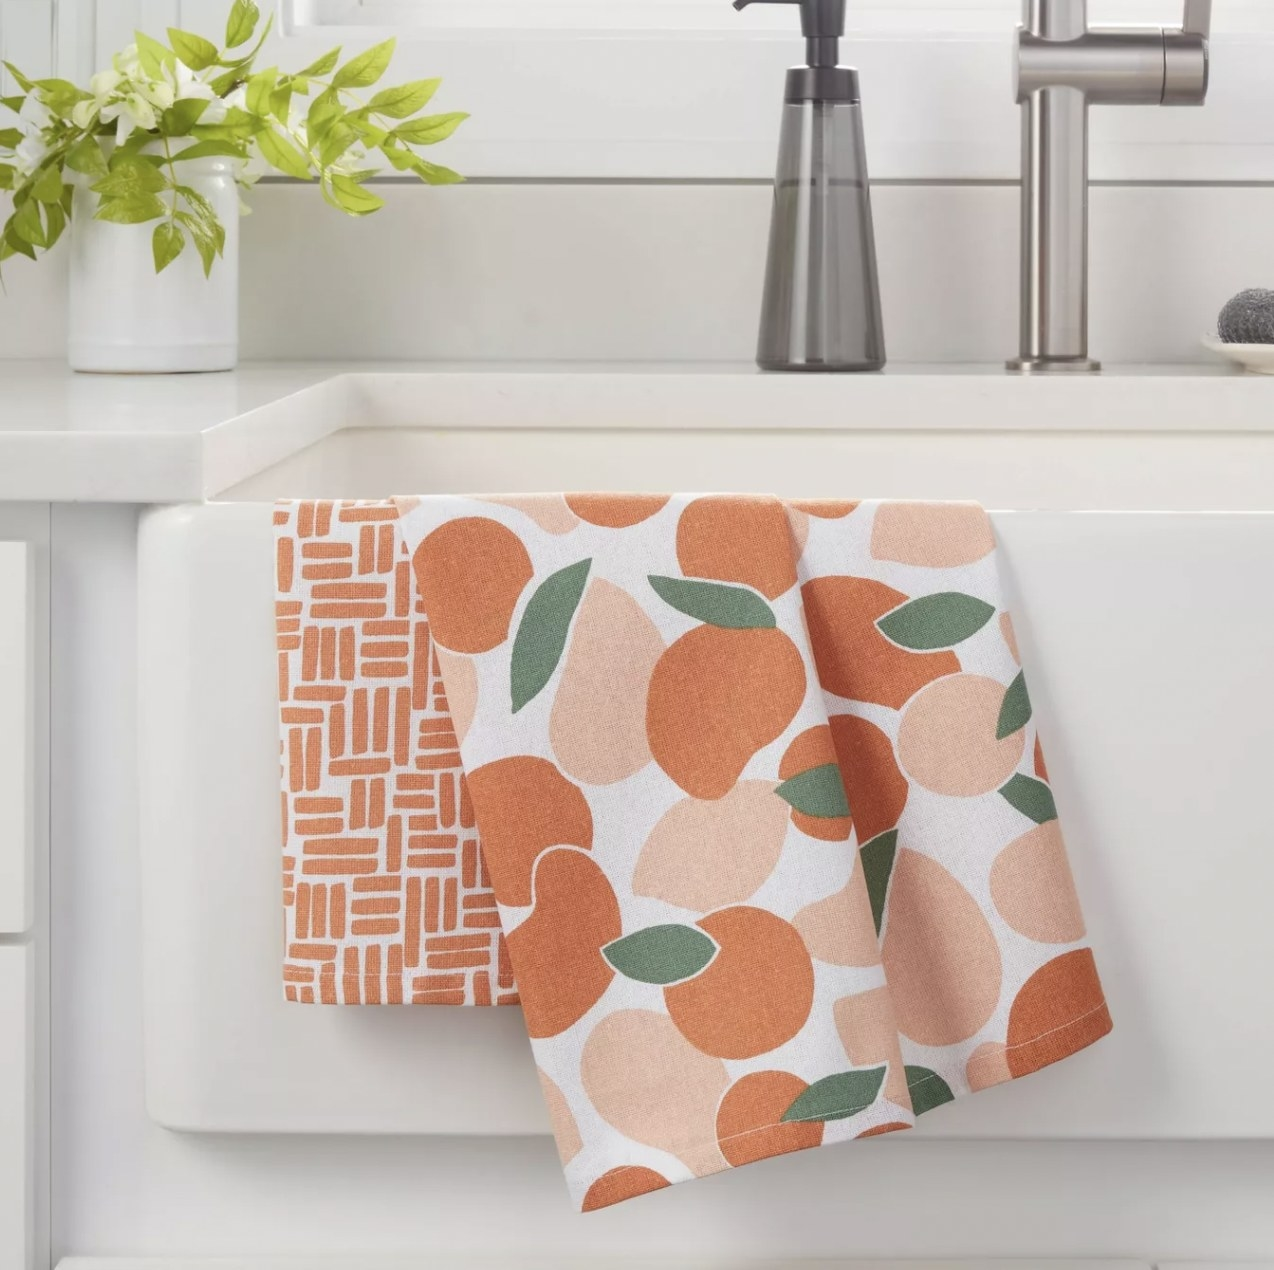 a kitchen towel set with oranges and abstract designs on them